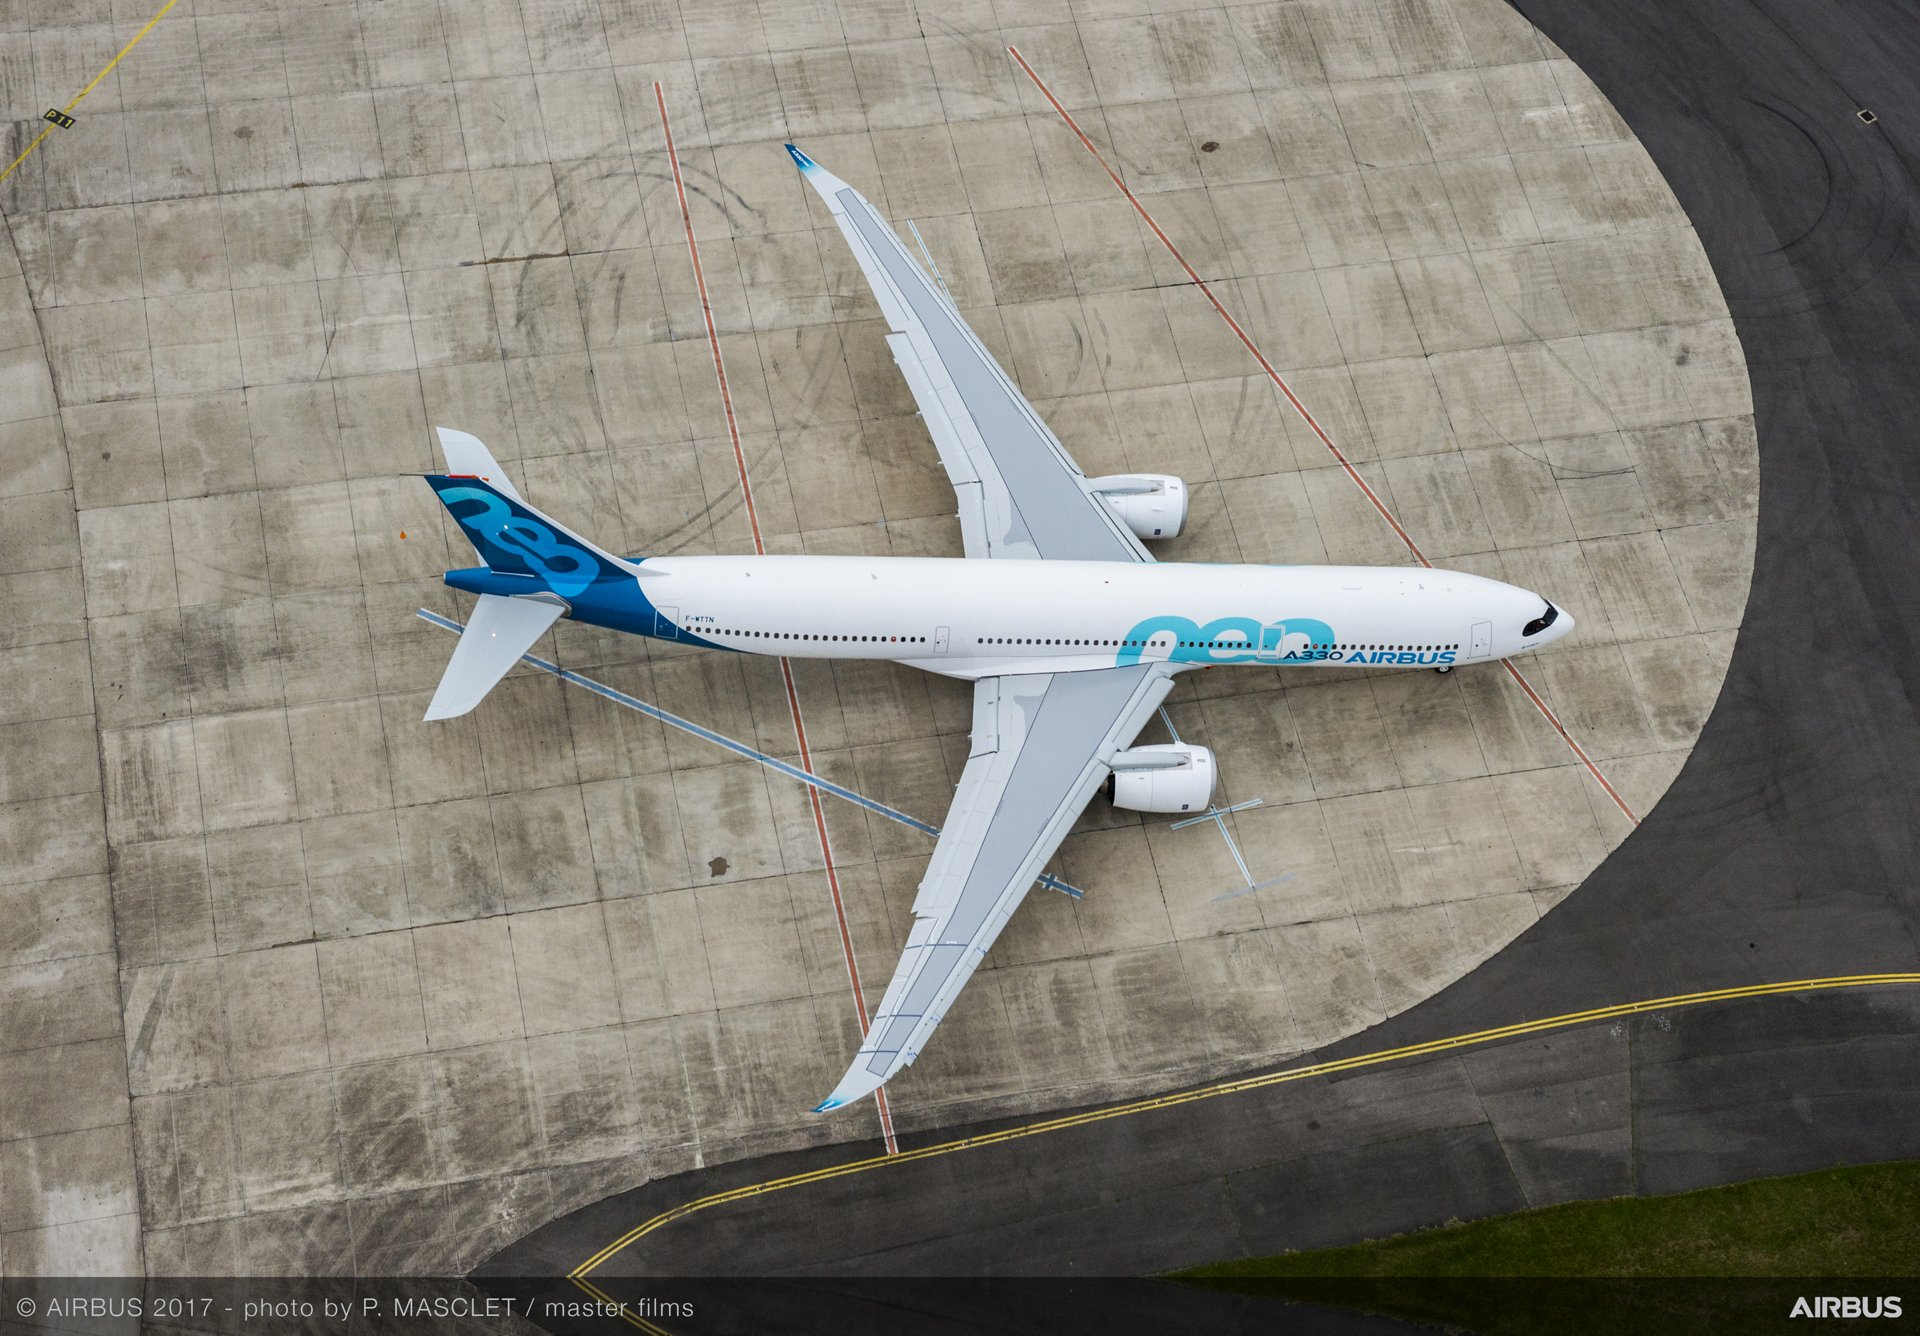 Performing the maiden flight of Airbus' A330neo was an A330-900 variant, which will be joined by two other dedicated flight-test aircraft to perform all flight testing in under one year for both the A330-900 and A330-800 versions